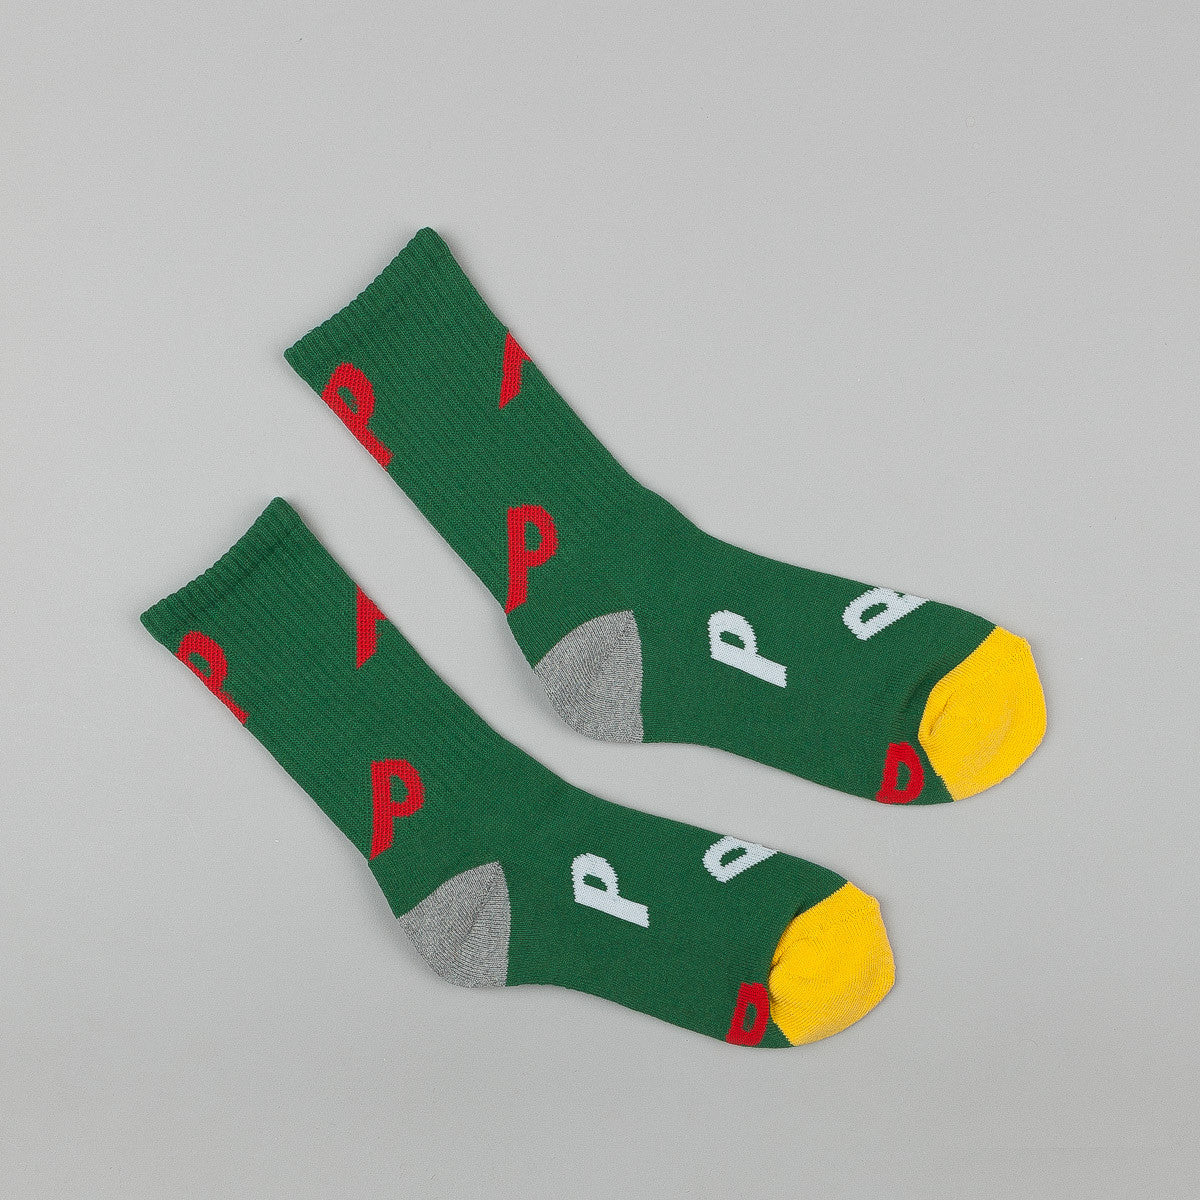 Palace P All Over Socks - Green / White / Red